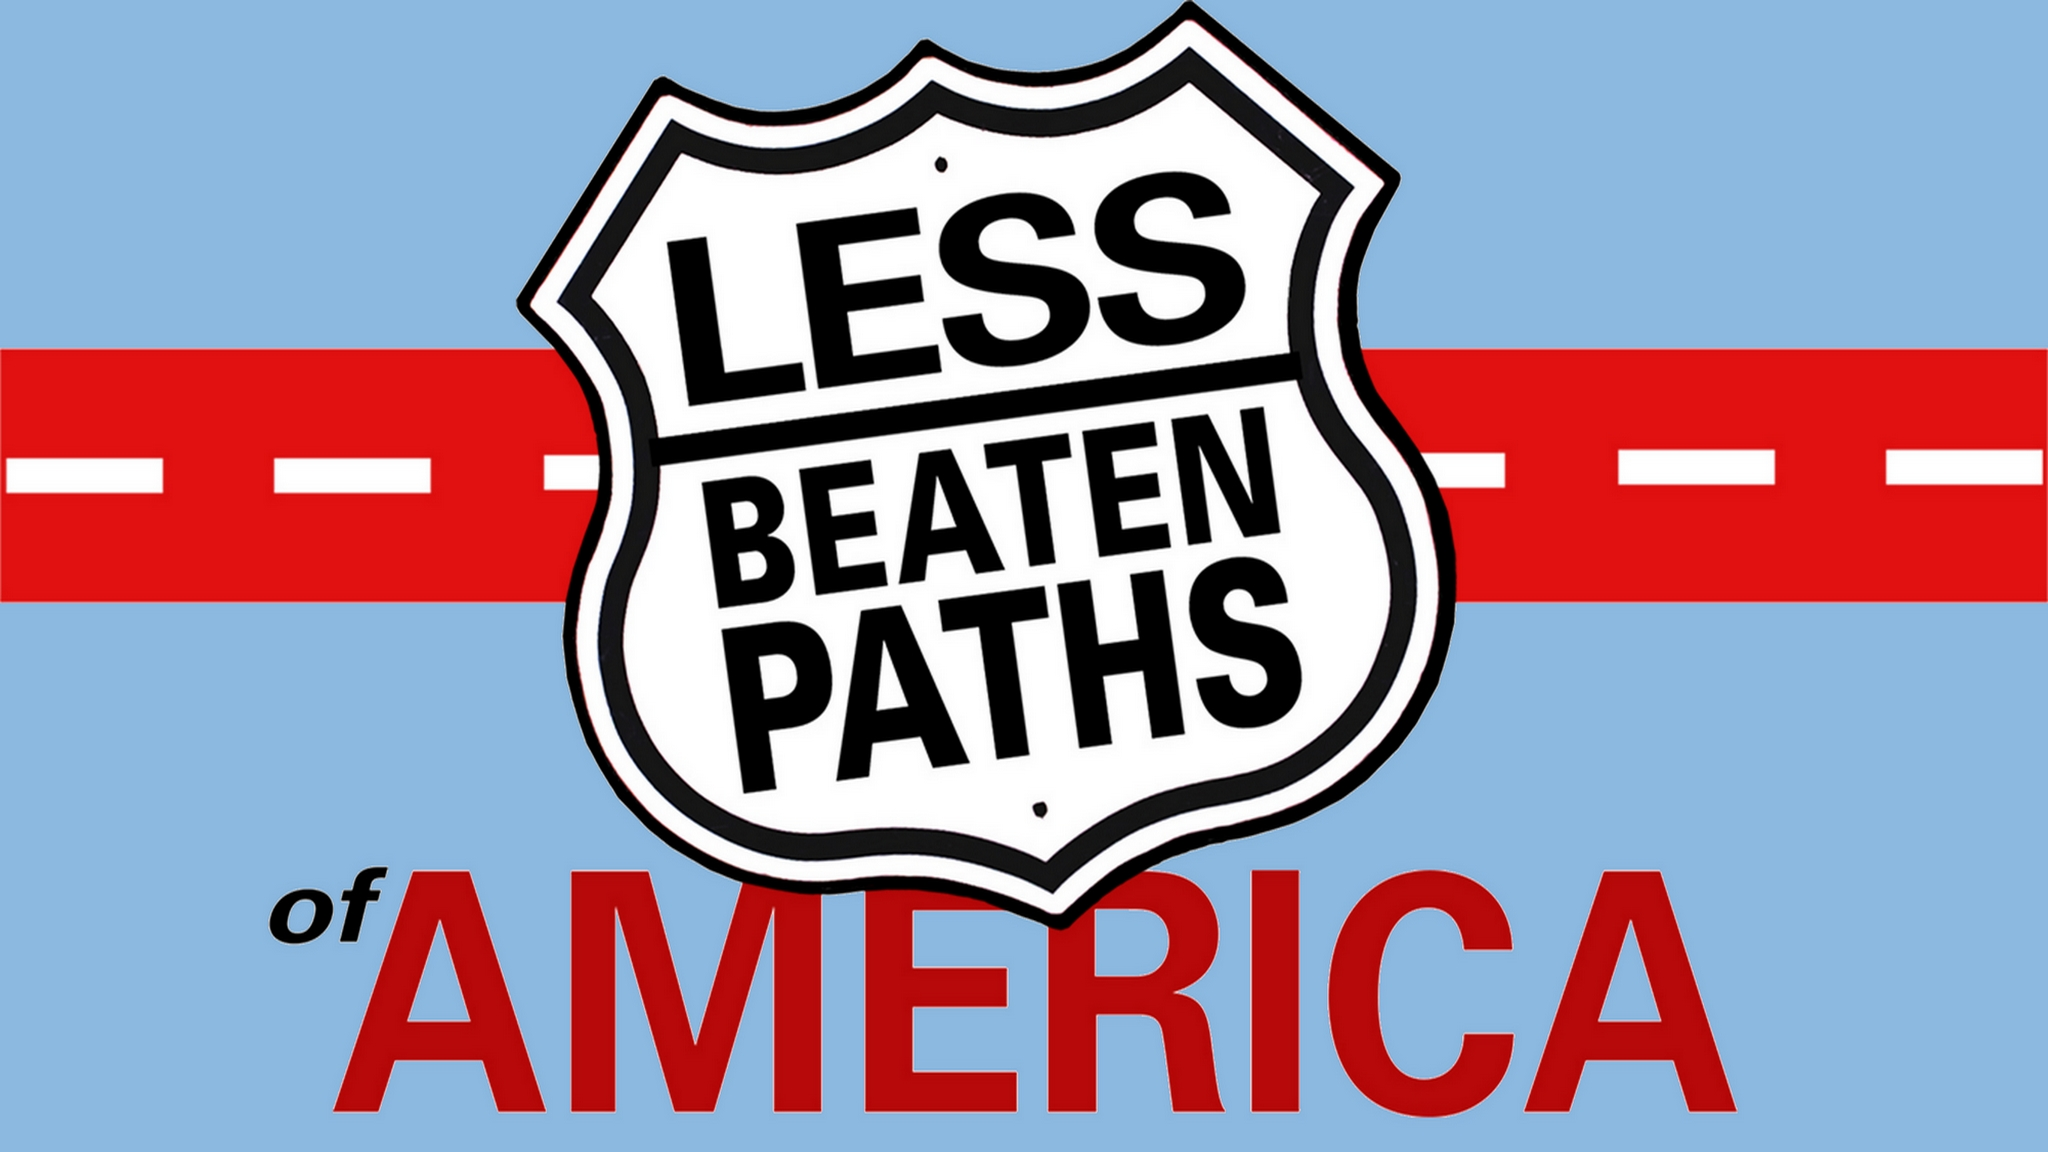 Less Beaten Paths of America